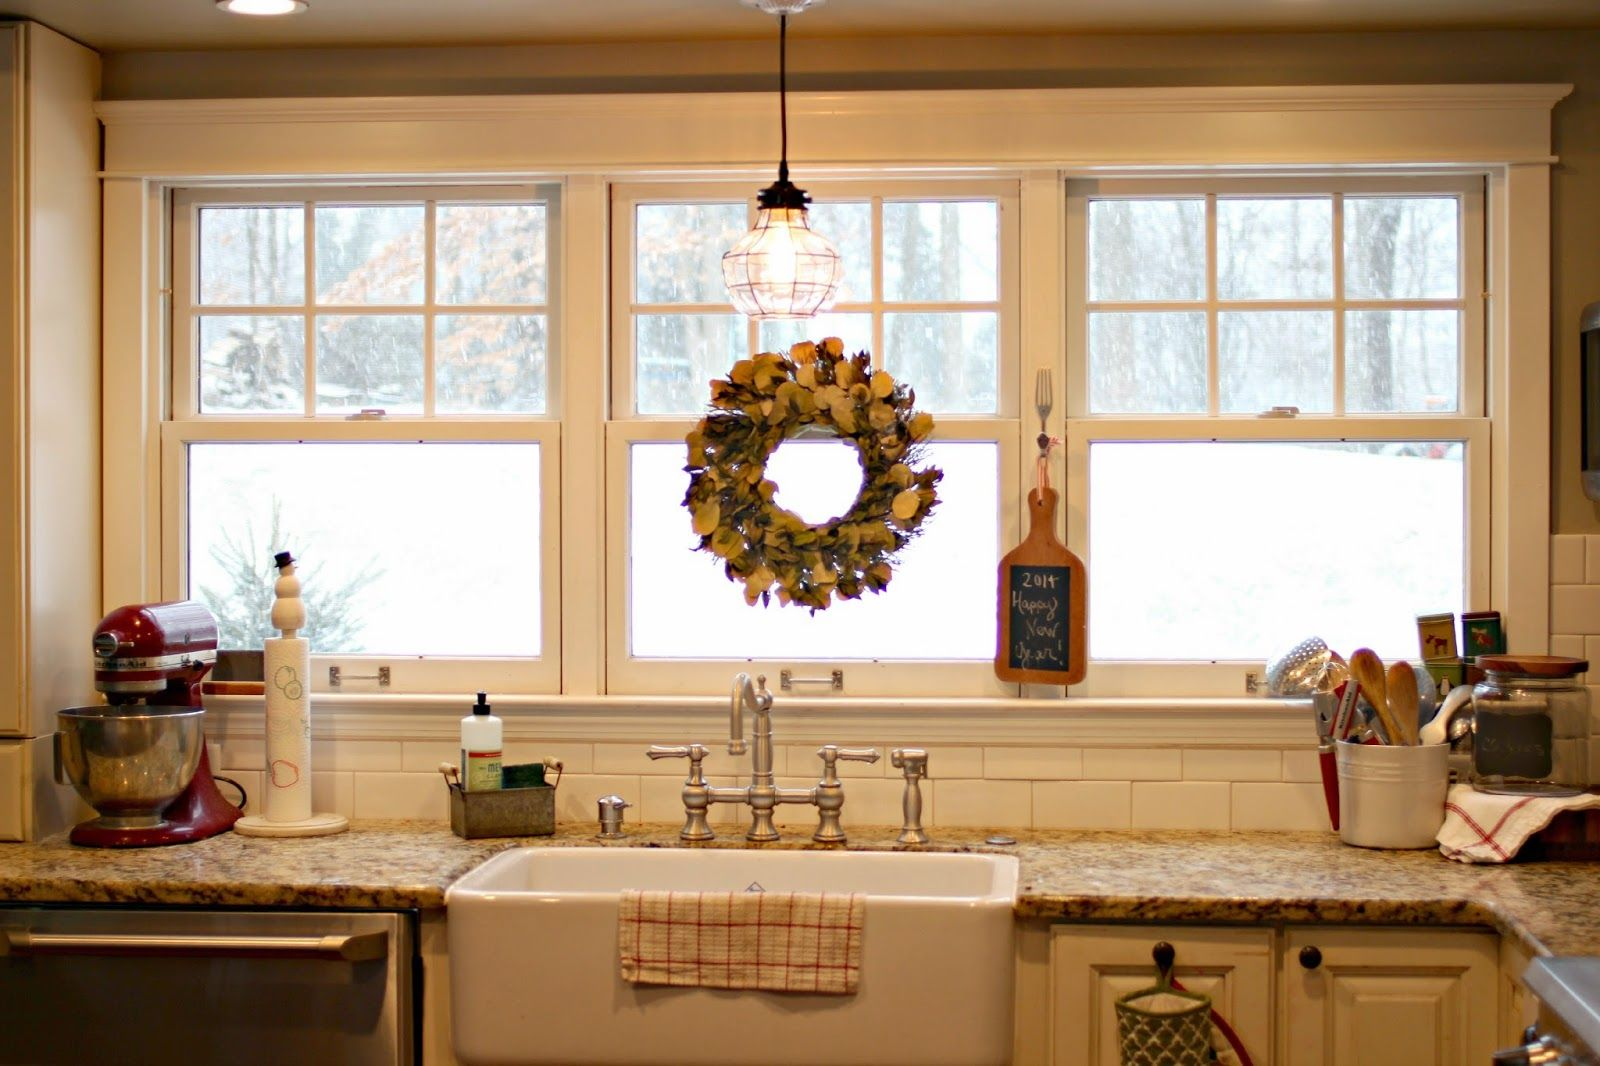 Explore Kitchen Sink Window, Window Over Sink, And More! Part 72